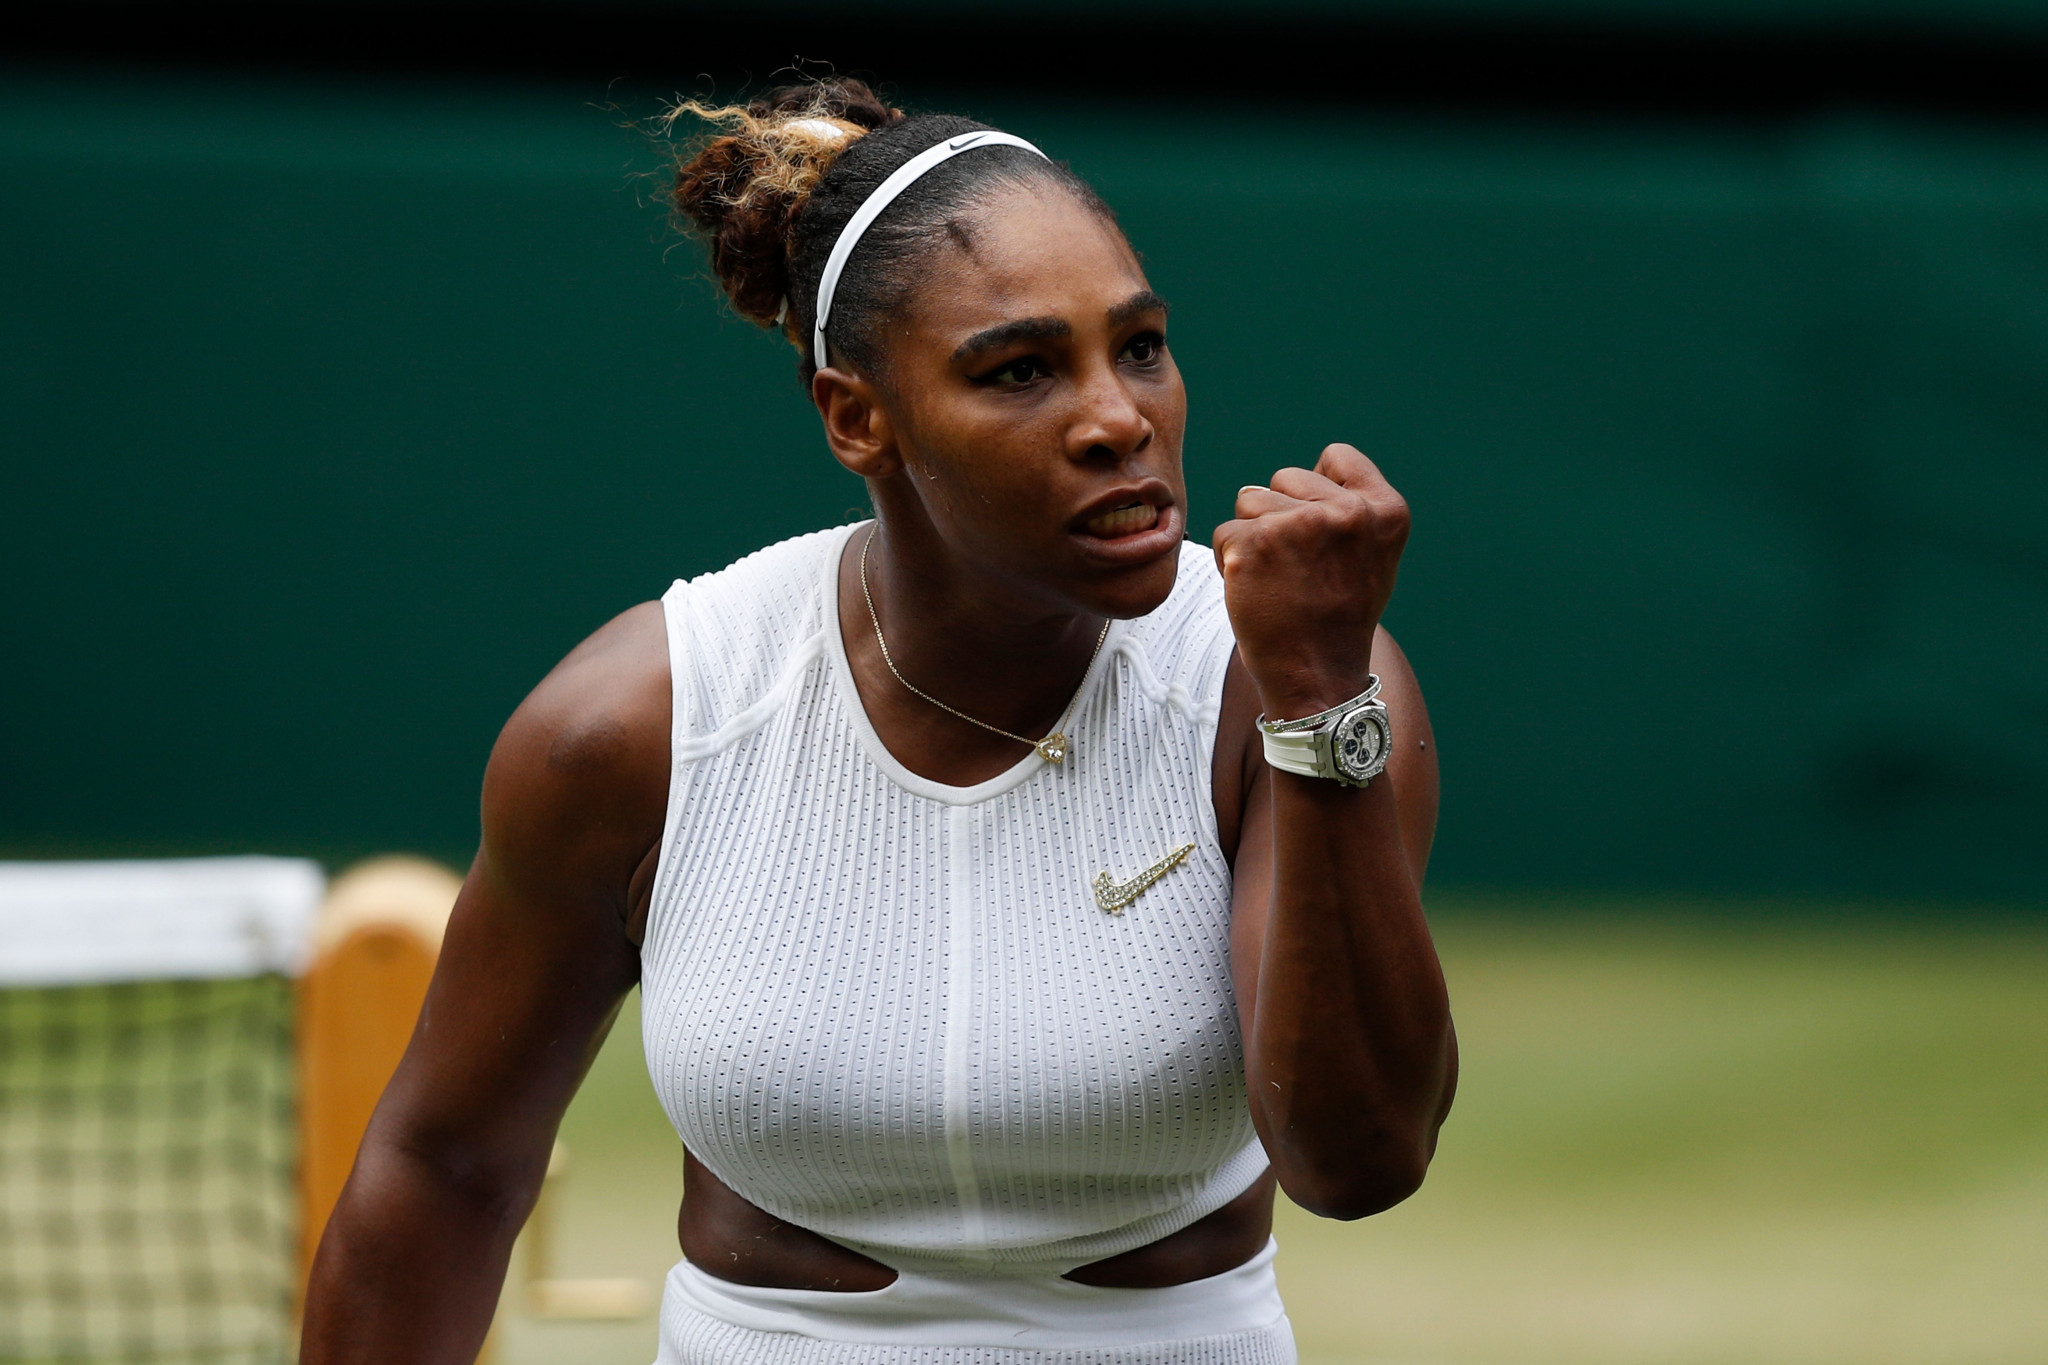 Williams sees off Riske to reach Wimbledon semi-finals